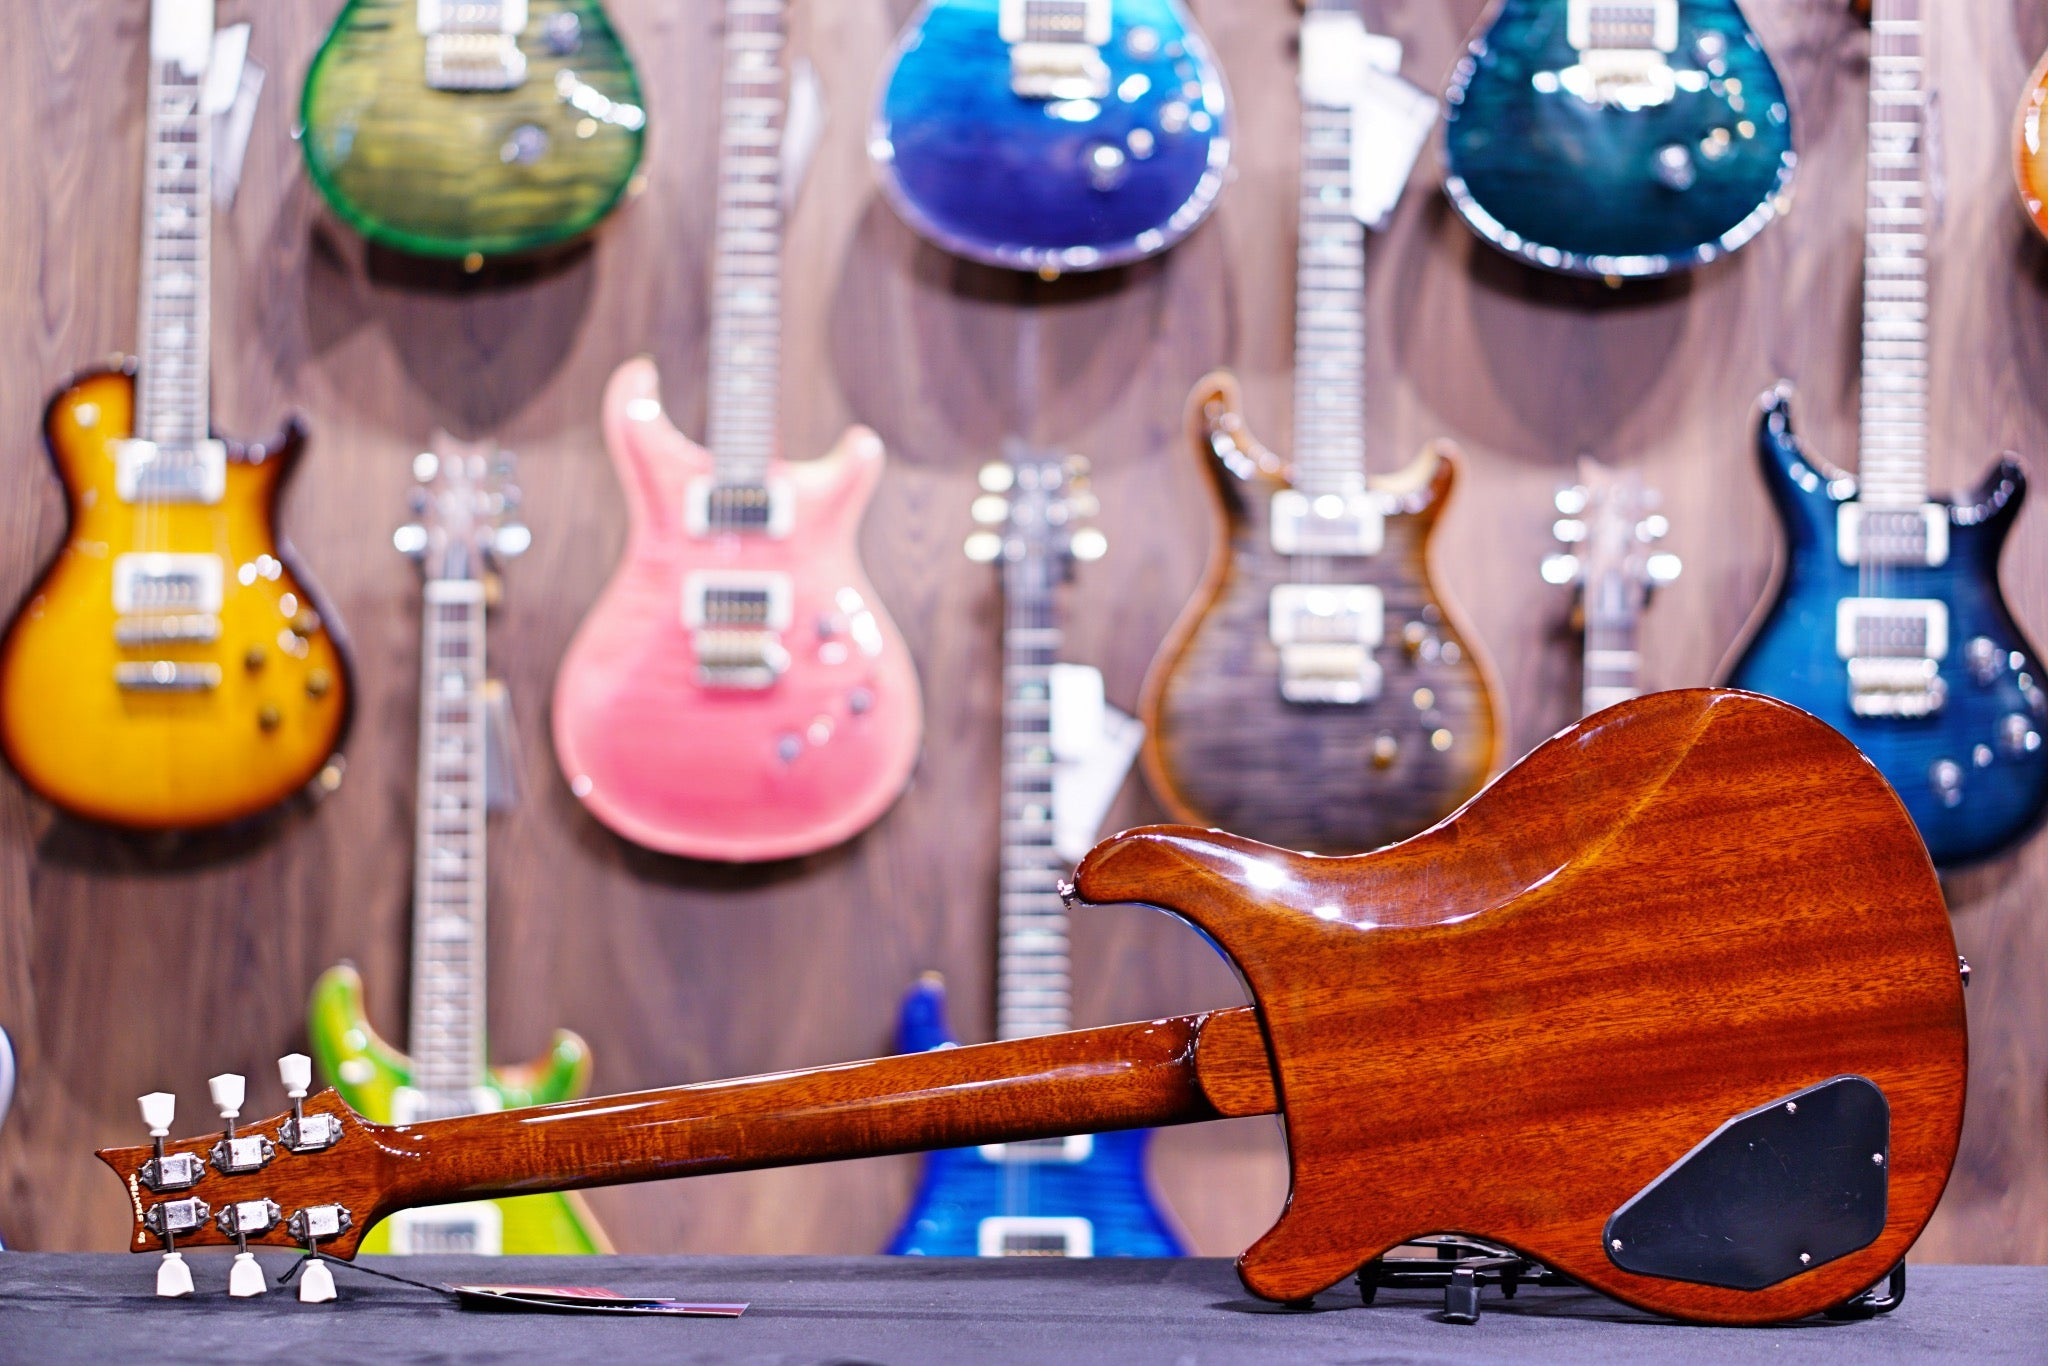 PRS S2 McCarty 594 Thinline Electric Guitar - Walnut  S2047806 - HIENDGUITAR   PRS GUITAR